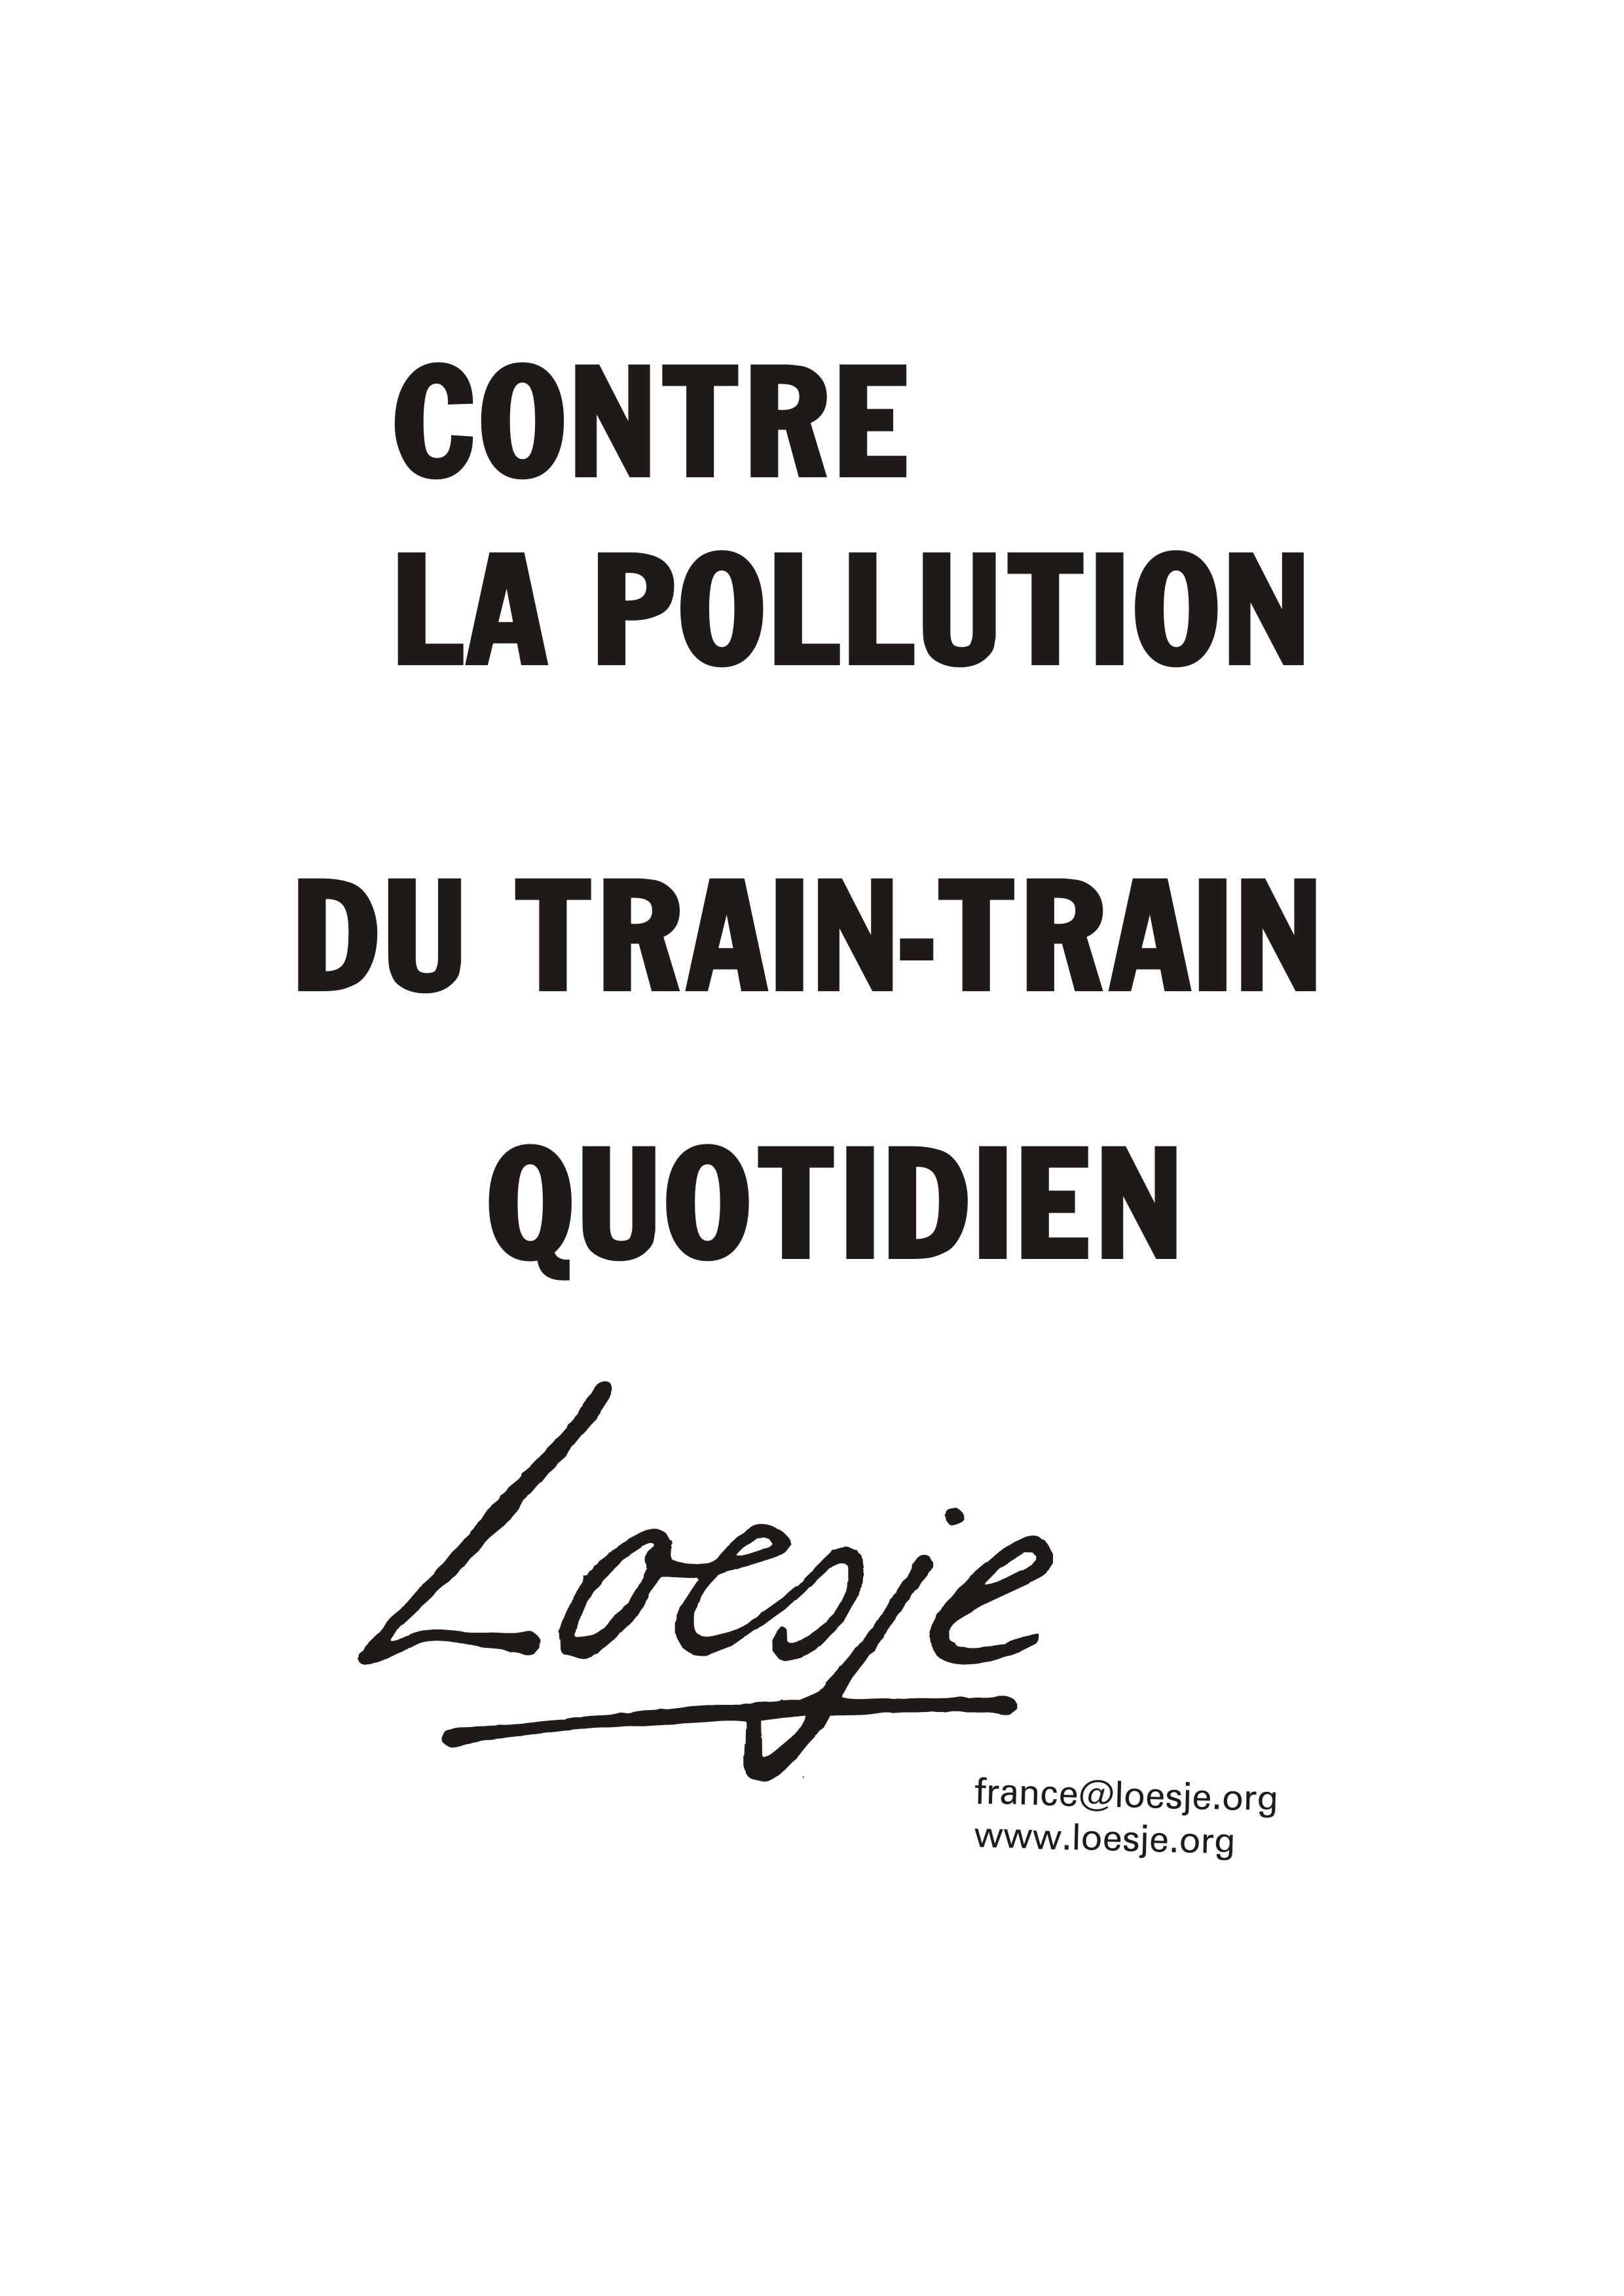 Contre la pollution du train train quotidien